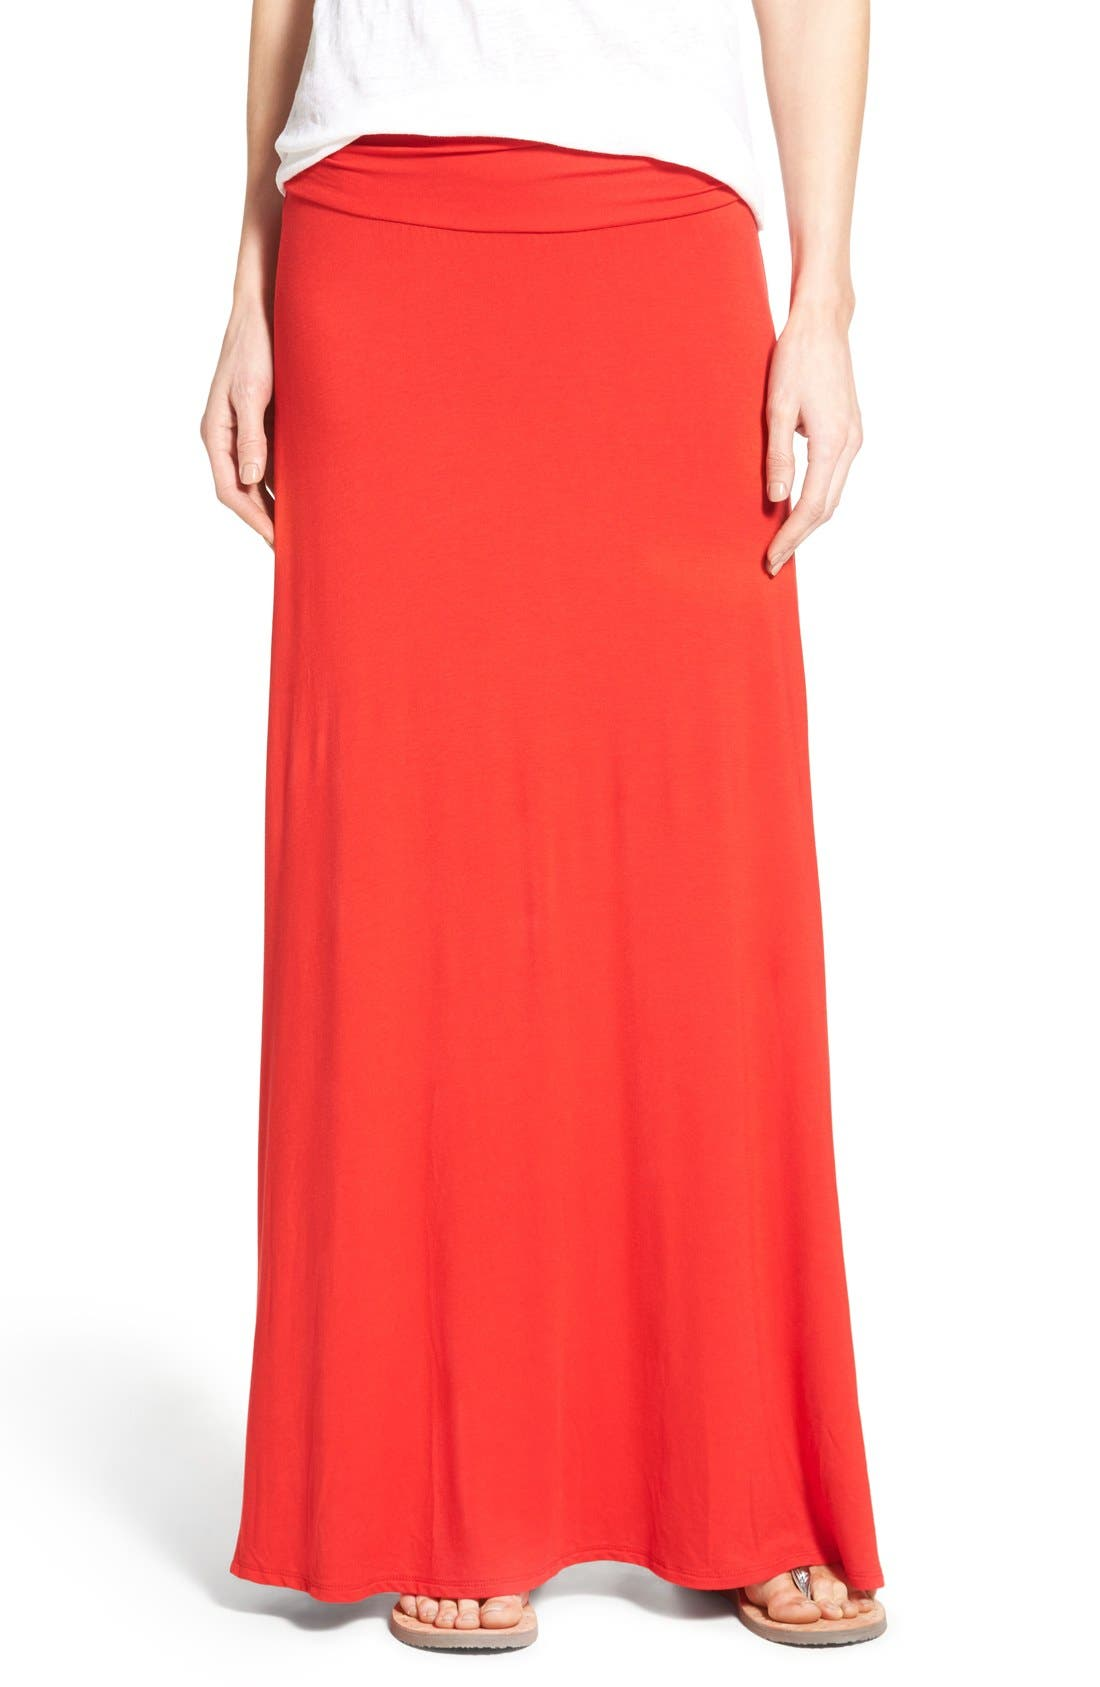 Alternate Image 1 Selected - Bobeau Ruched Waist Side Slit Maxi Skirt (Regular & Petite)